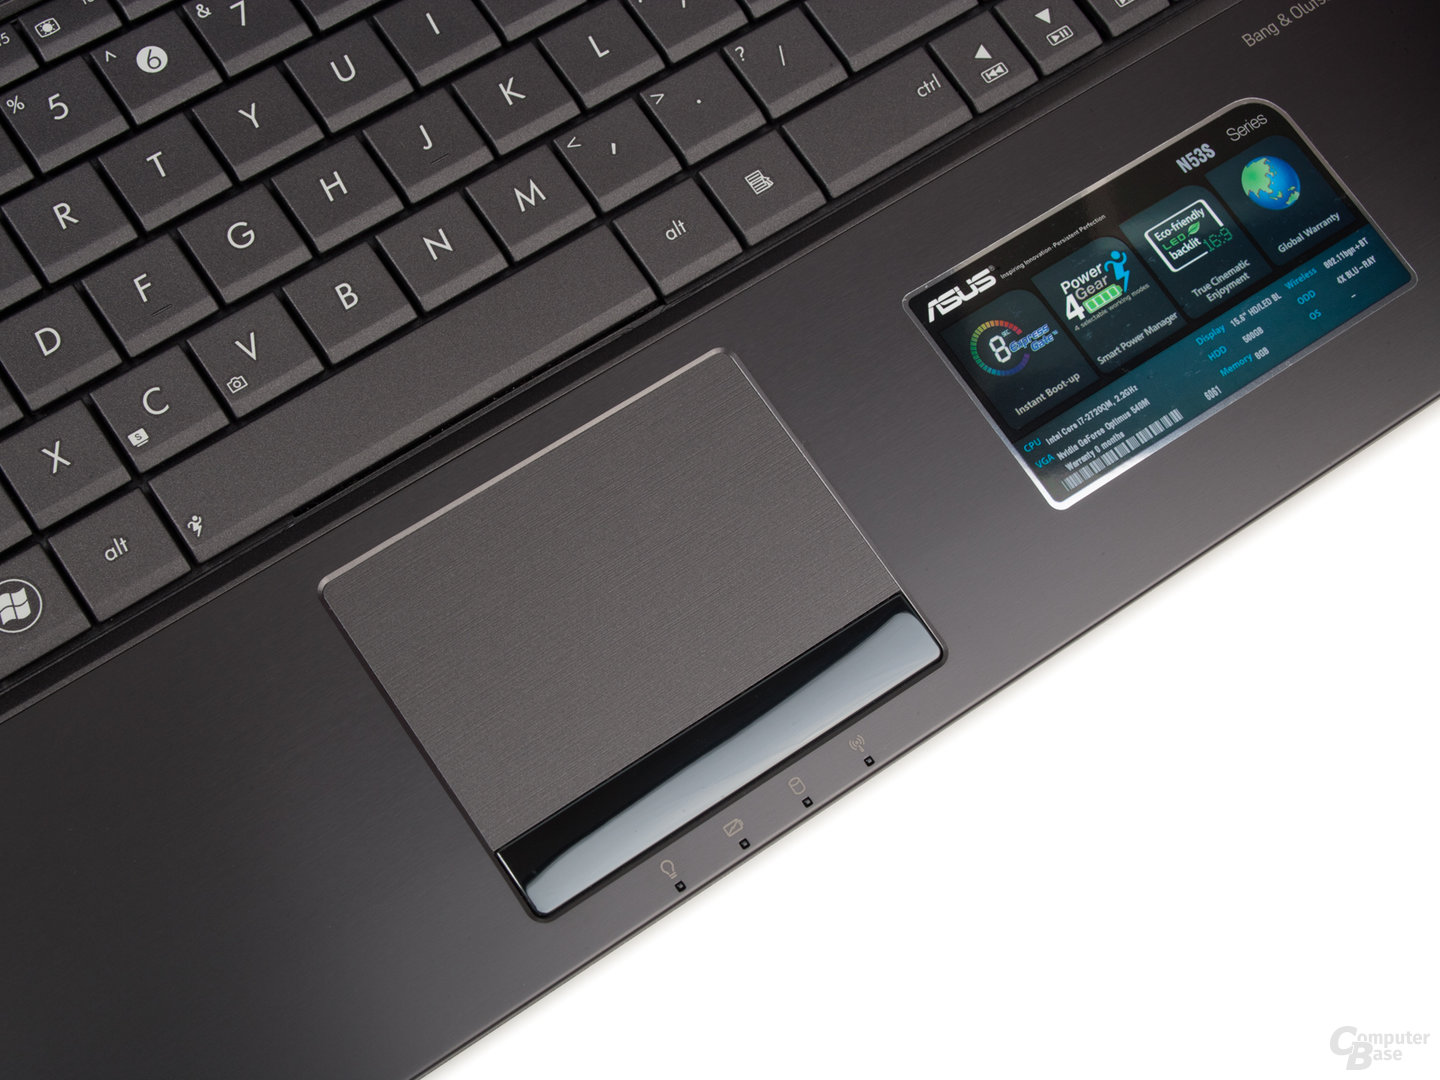 Asus N53SV: Touchpad